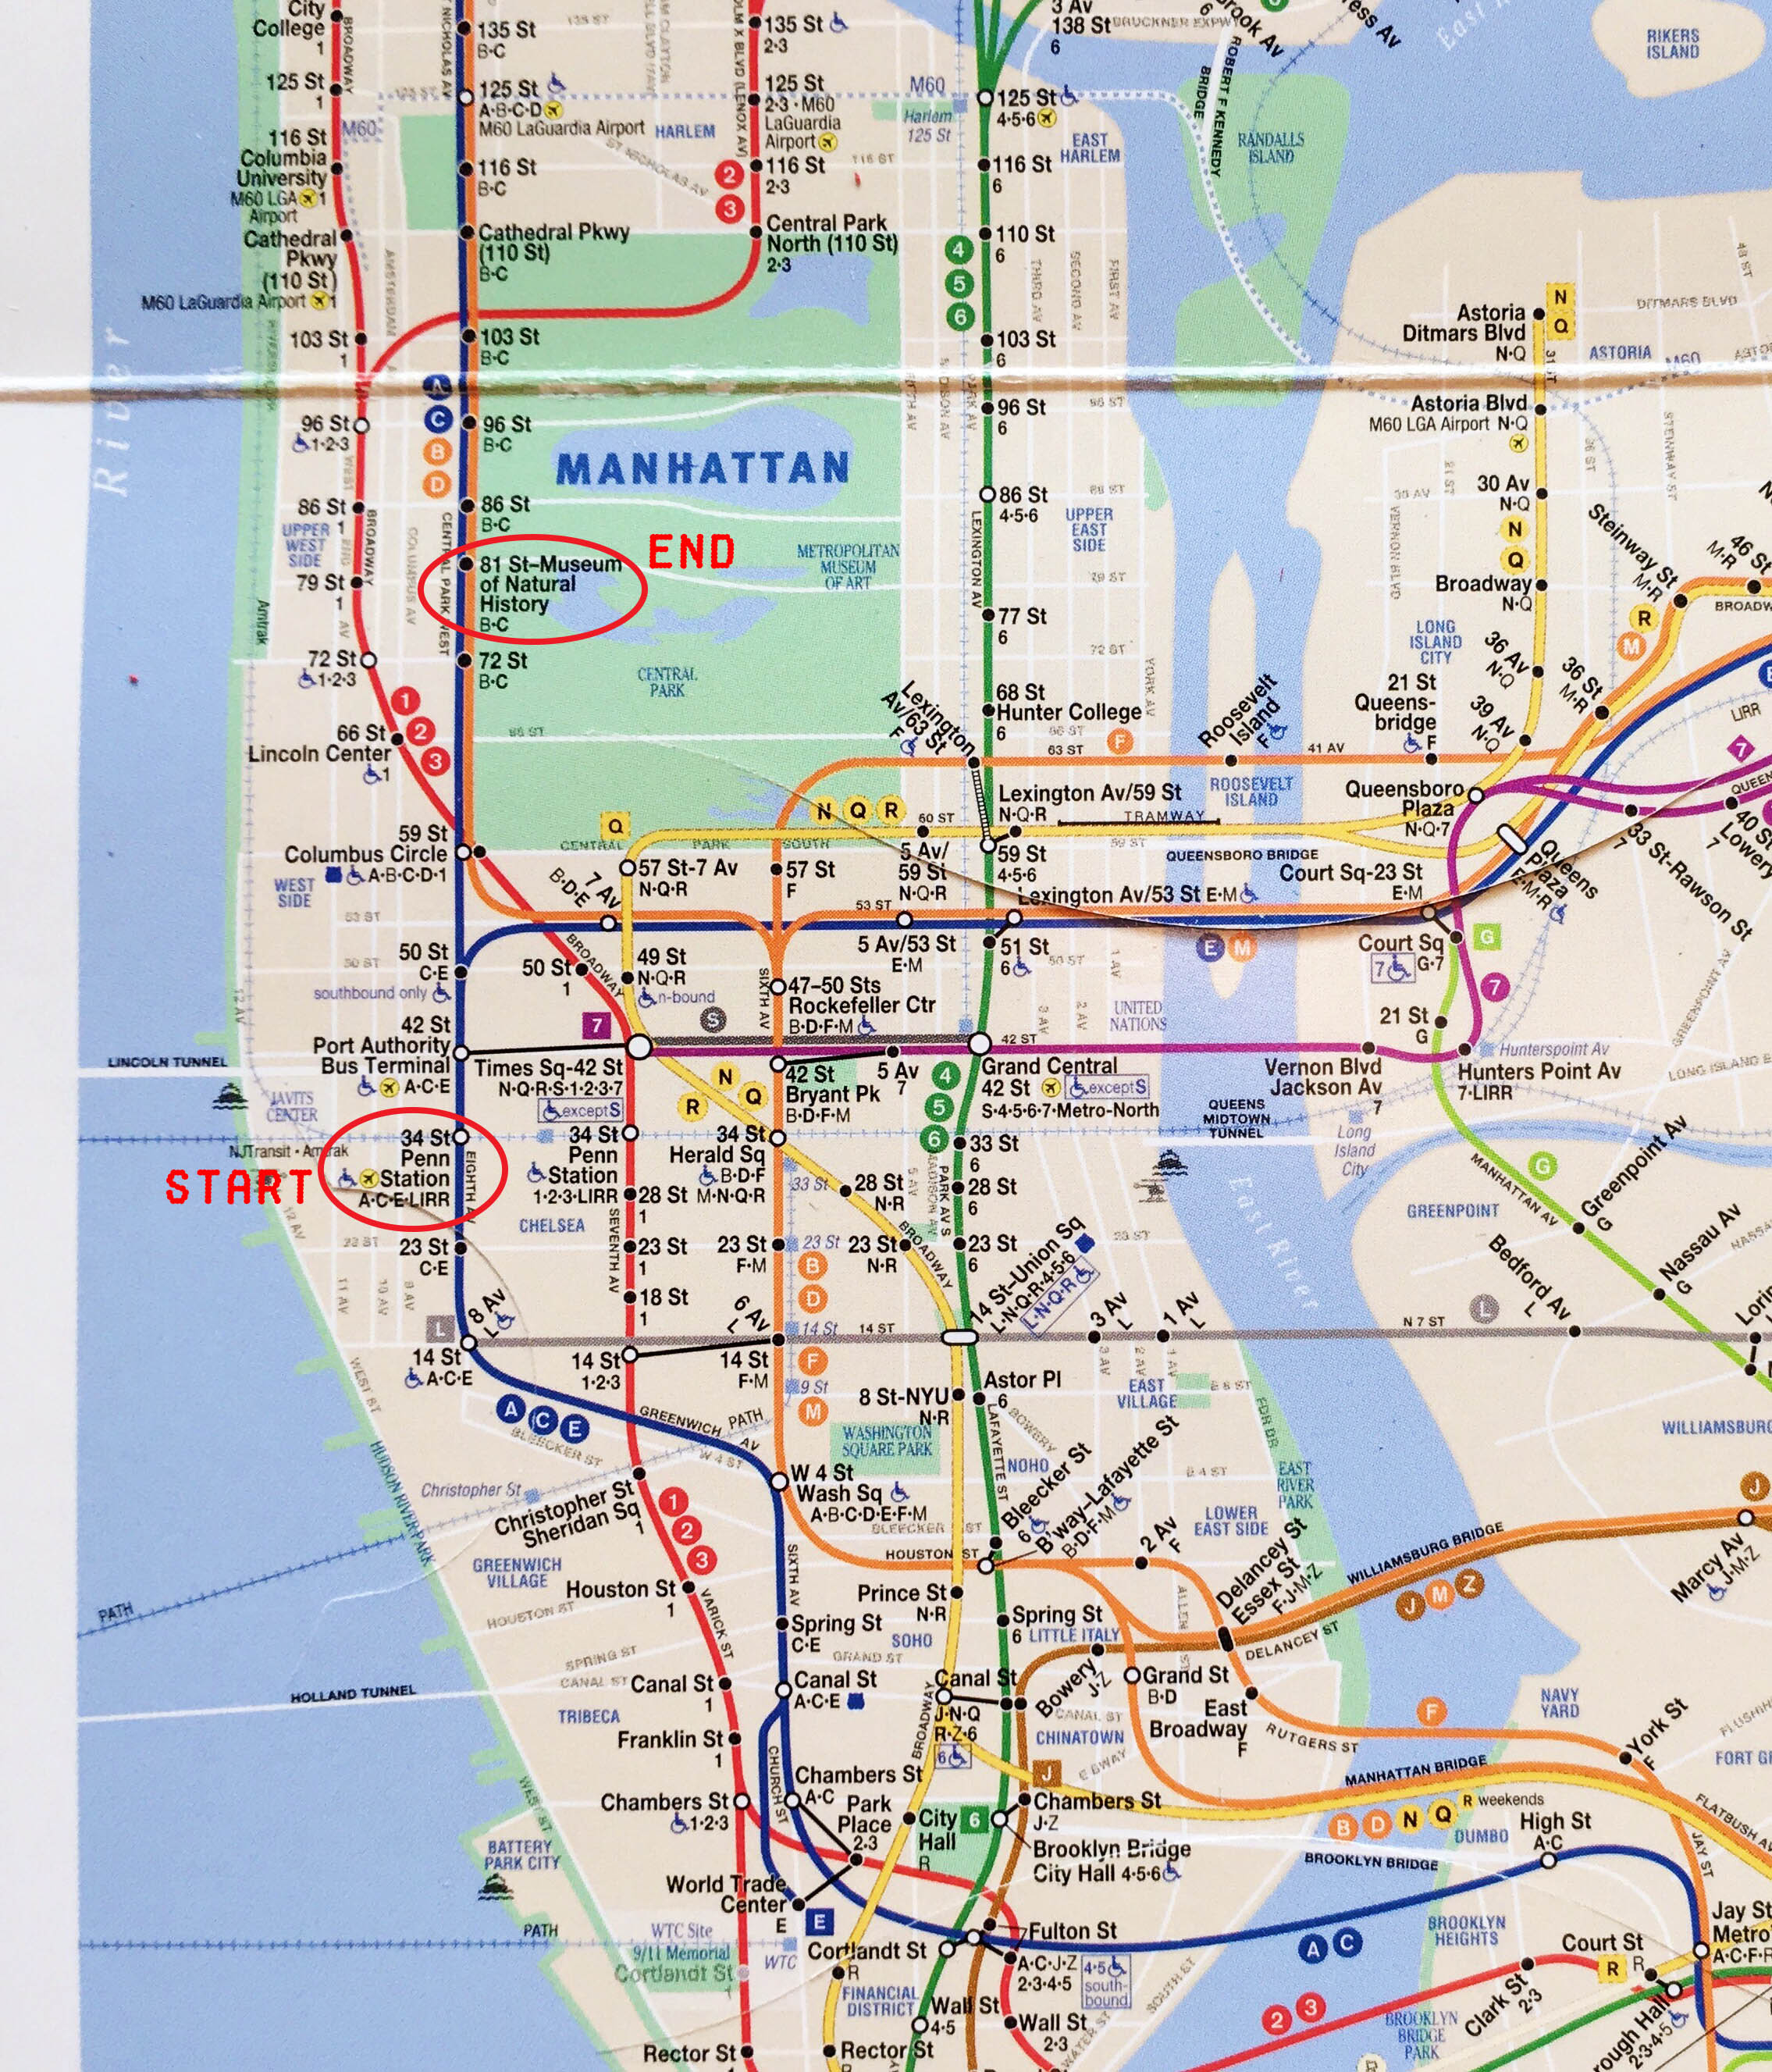 NY Guide Map - 12 Tips for your first time in New York City